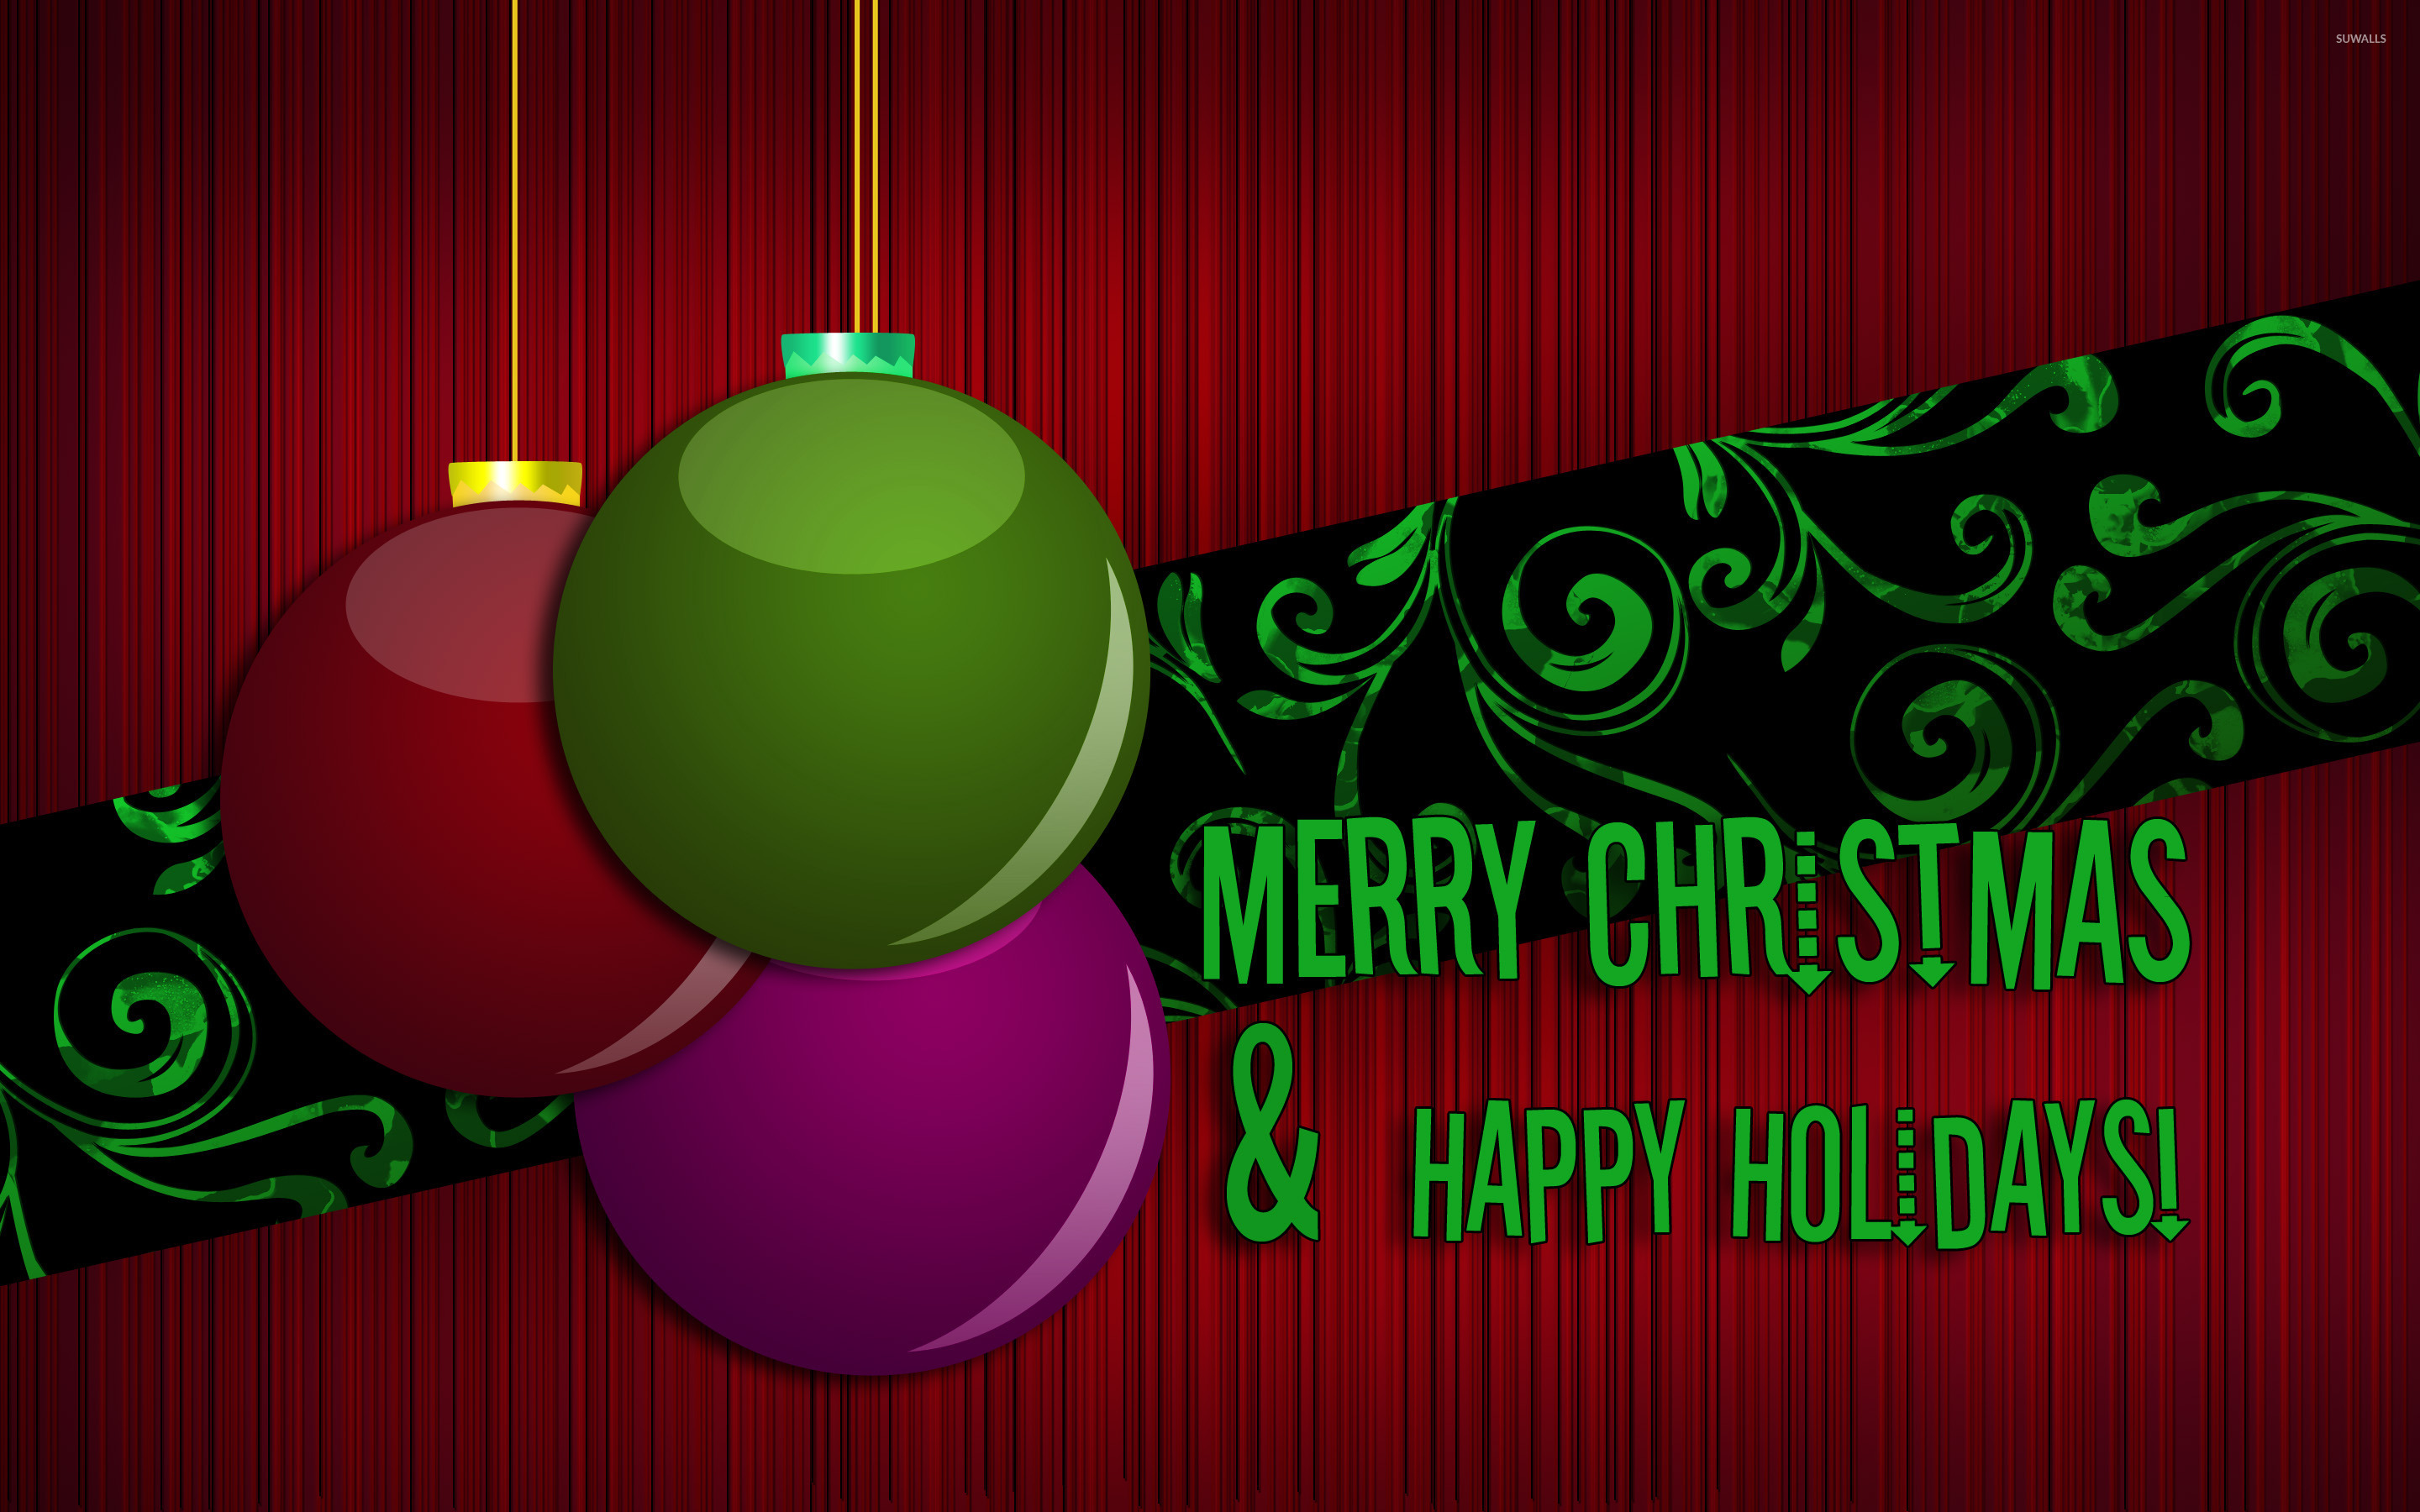 Merry Christmas and Happy Holidays wallpaper - Holiday wallpapers ...